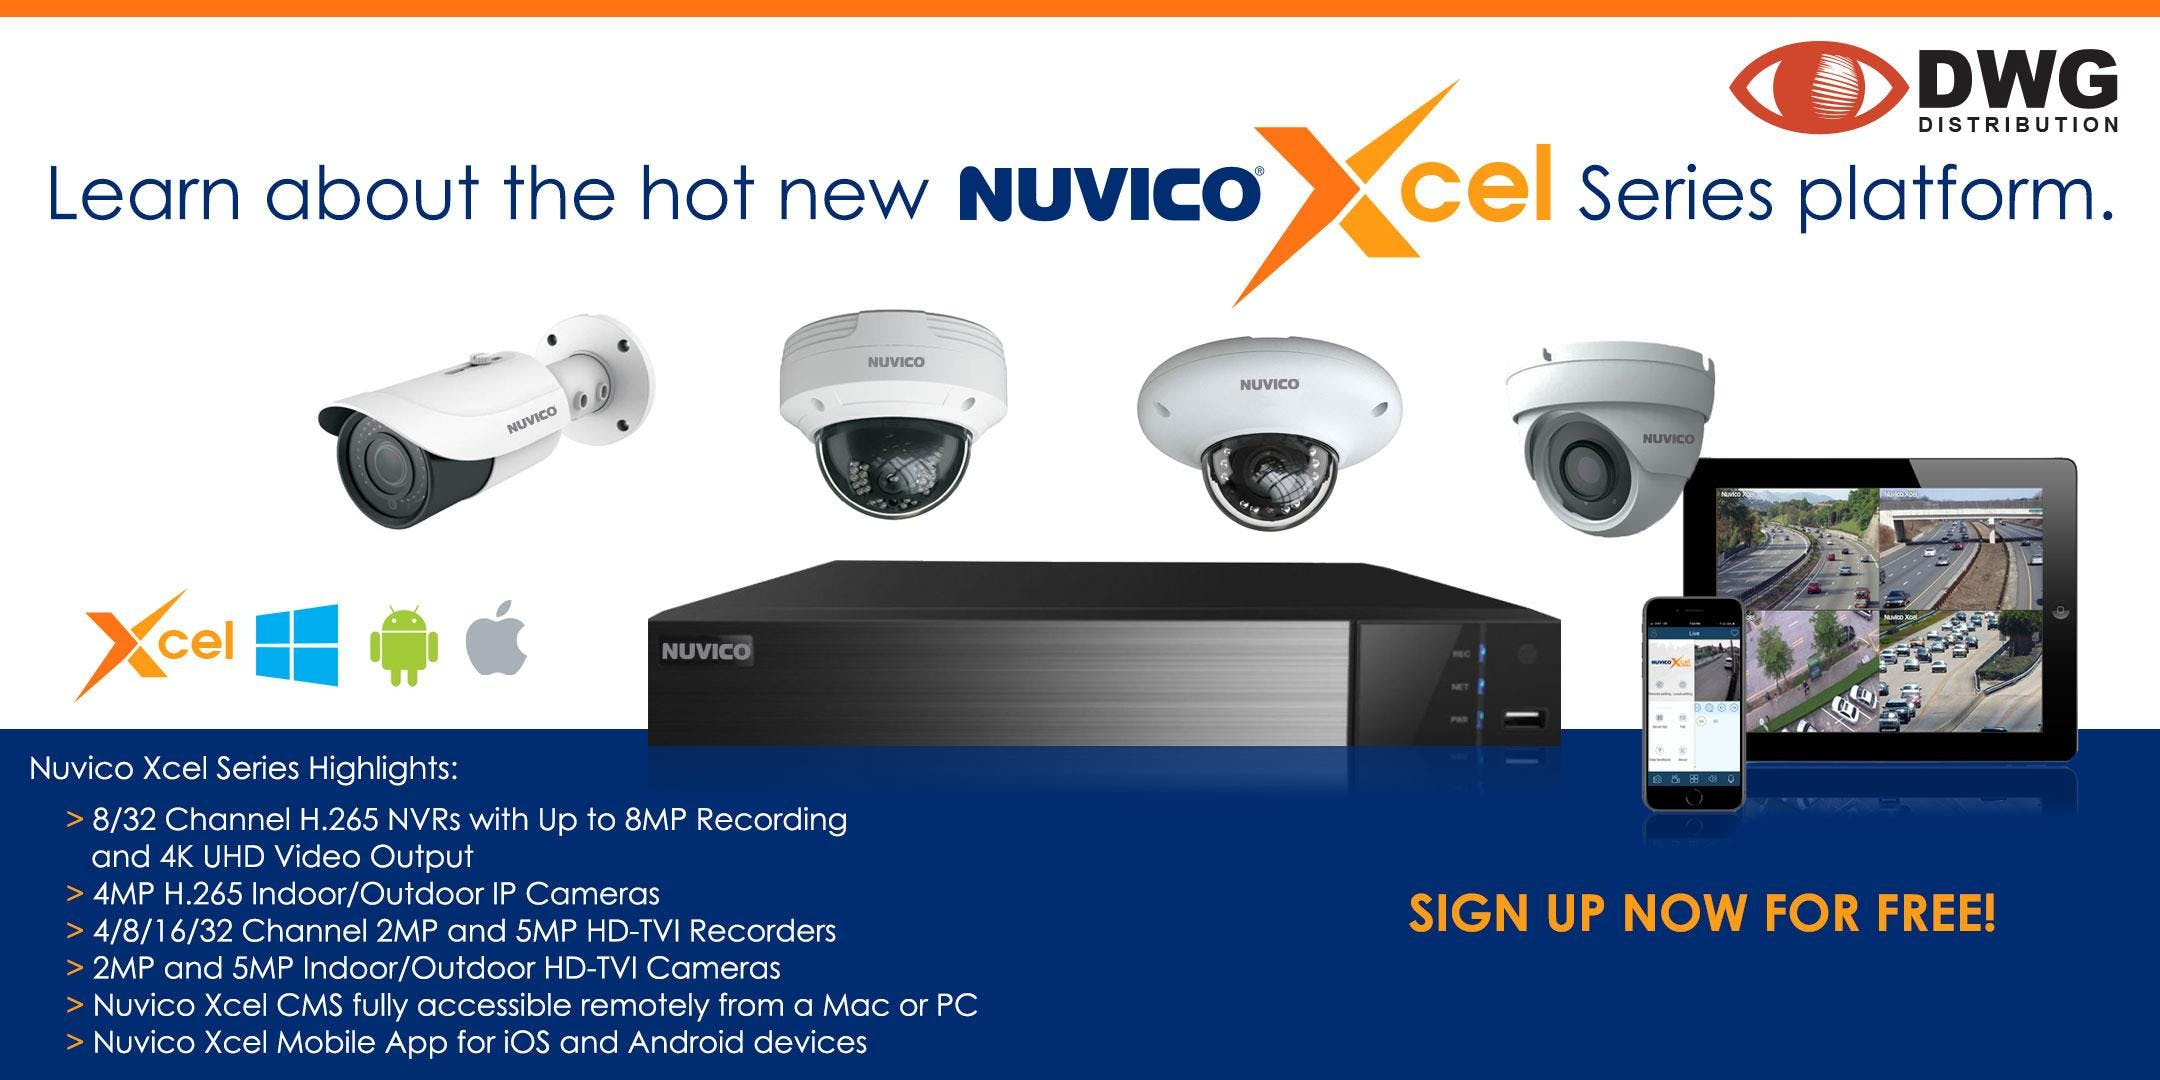 Nuvico Xcel Series Counter Day